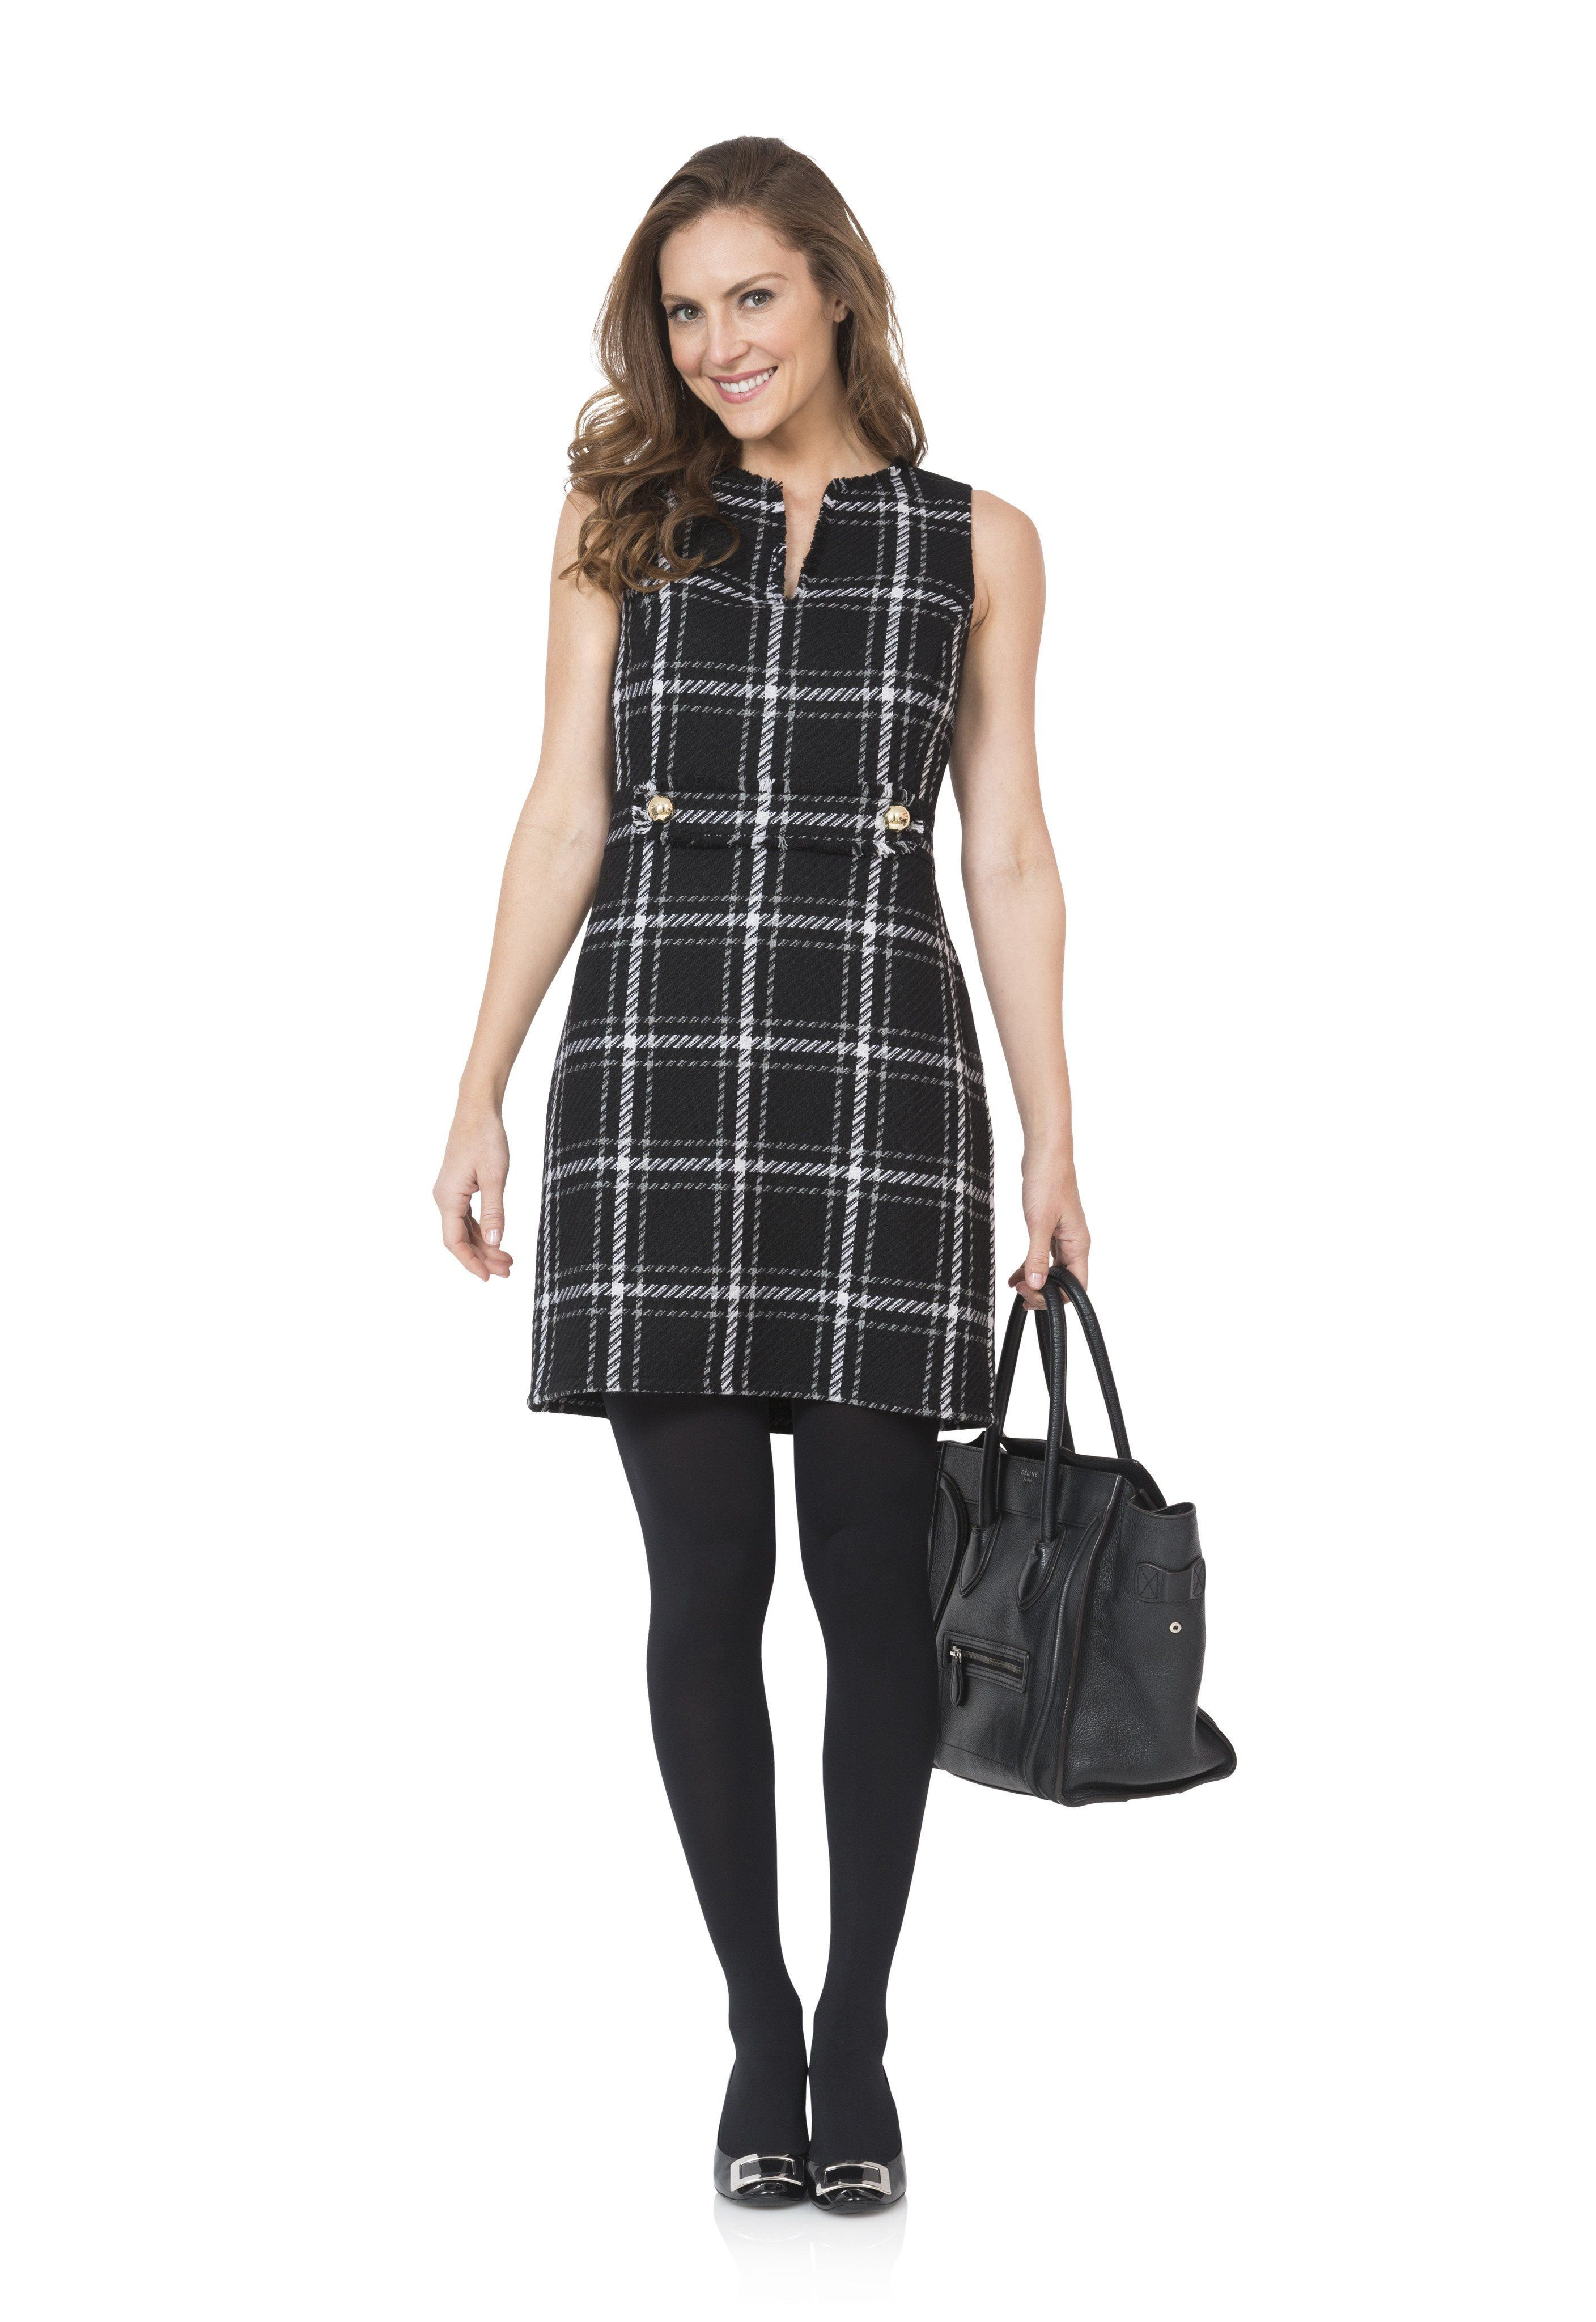 ad4a4a7da97 Sail to Sable Black Plaid Belted Dress in 2018